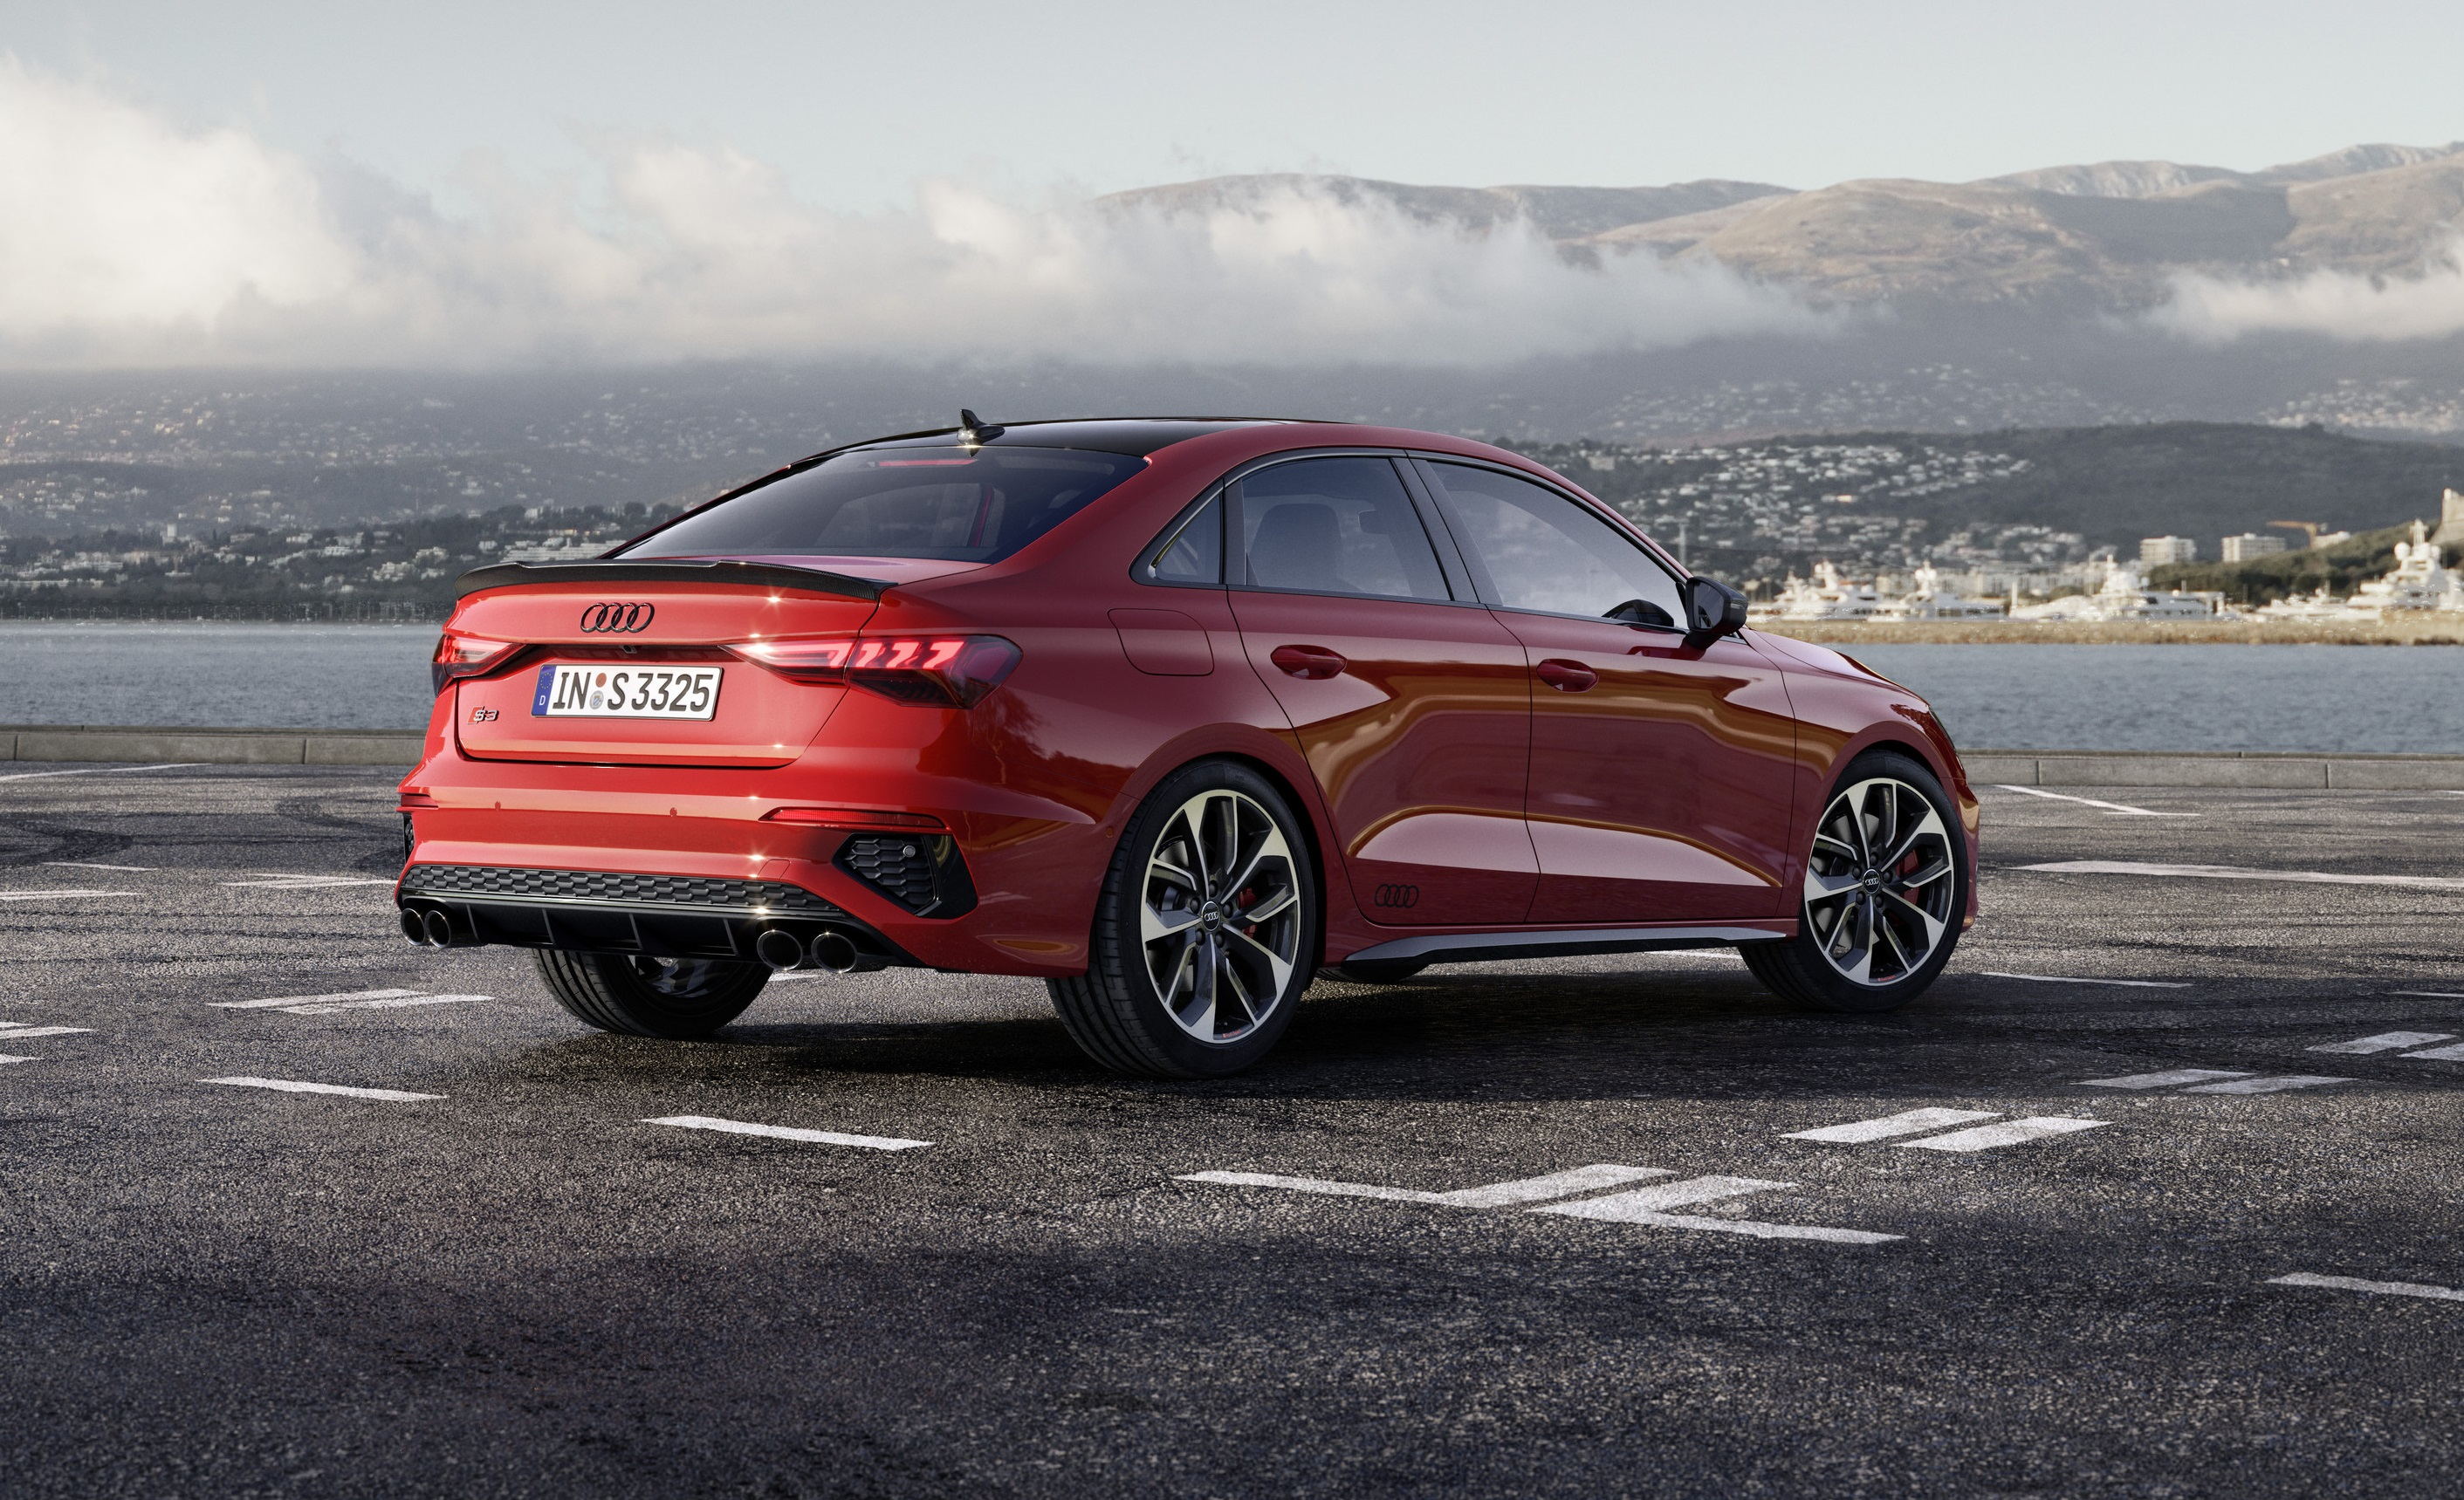 2022 Audi S3 rear view in red